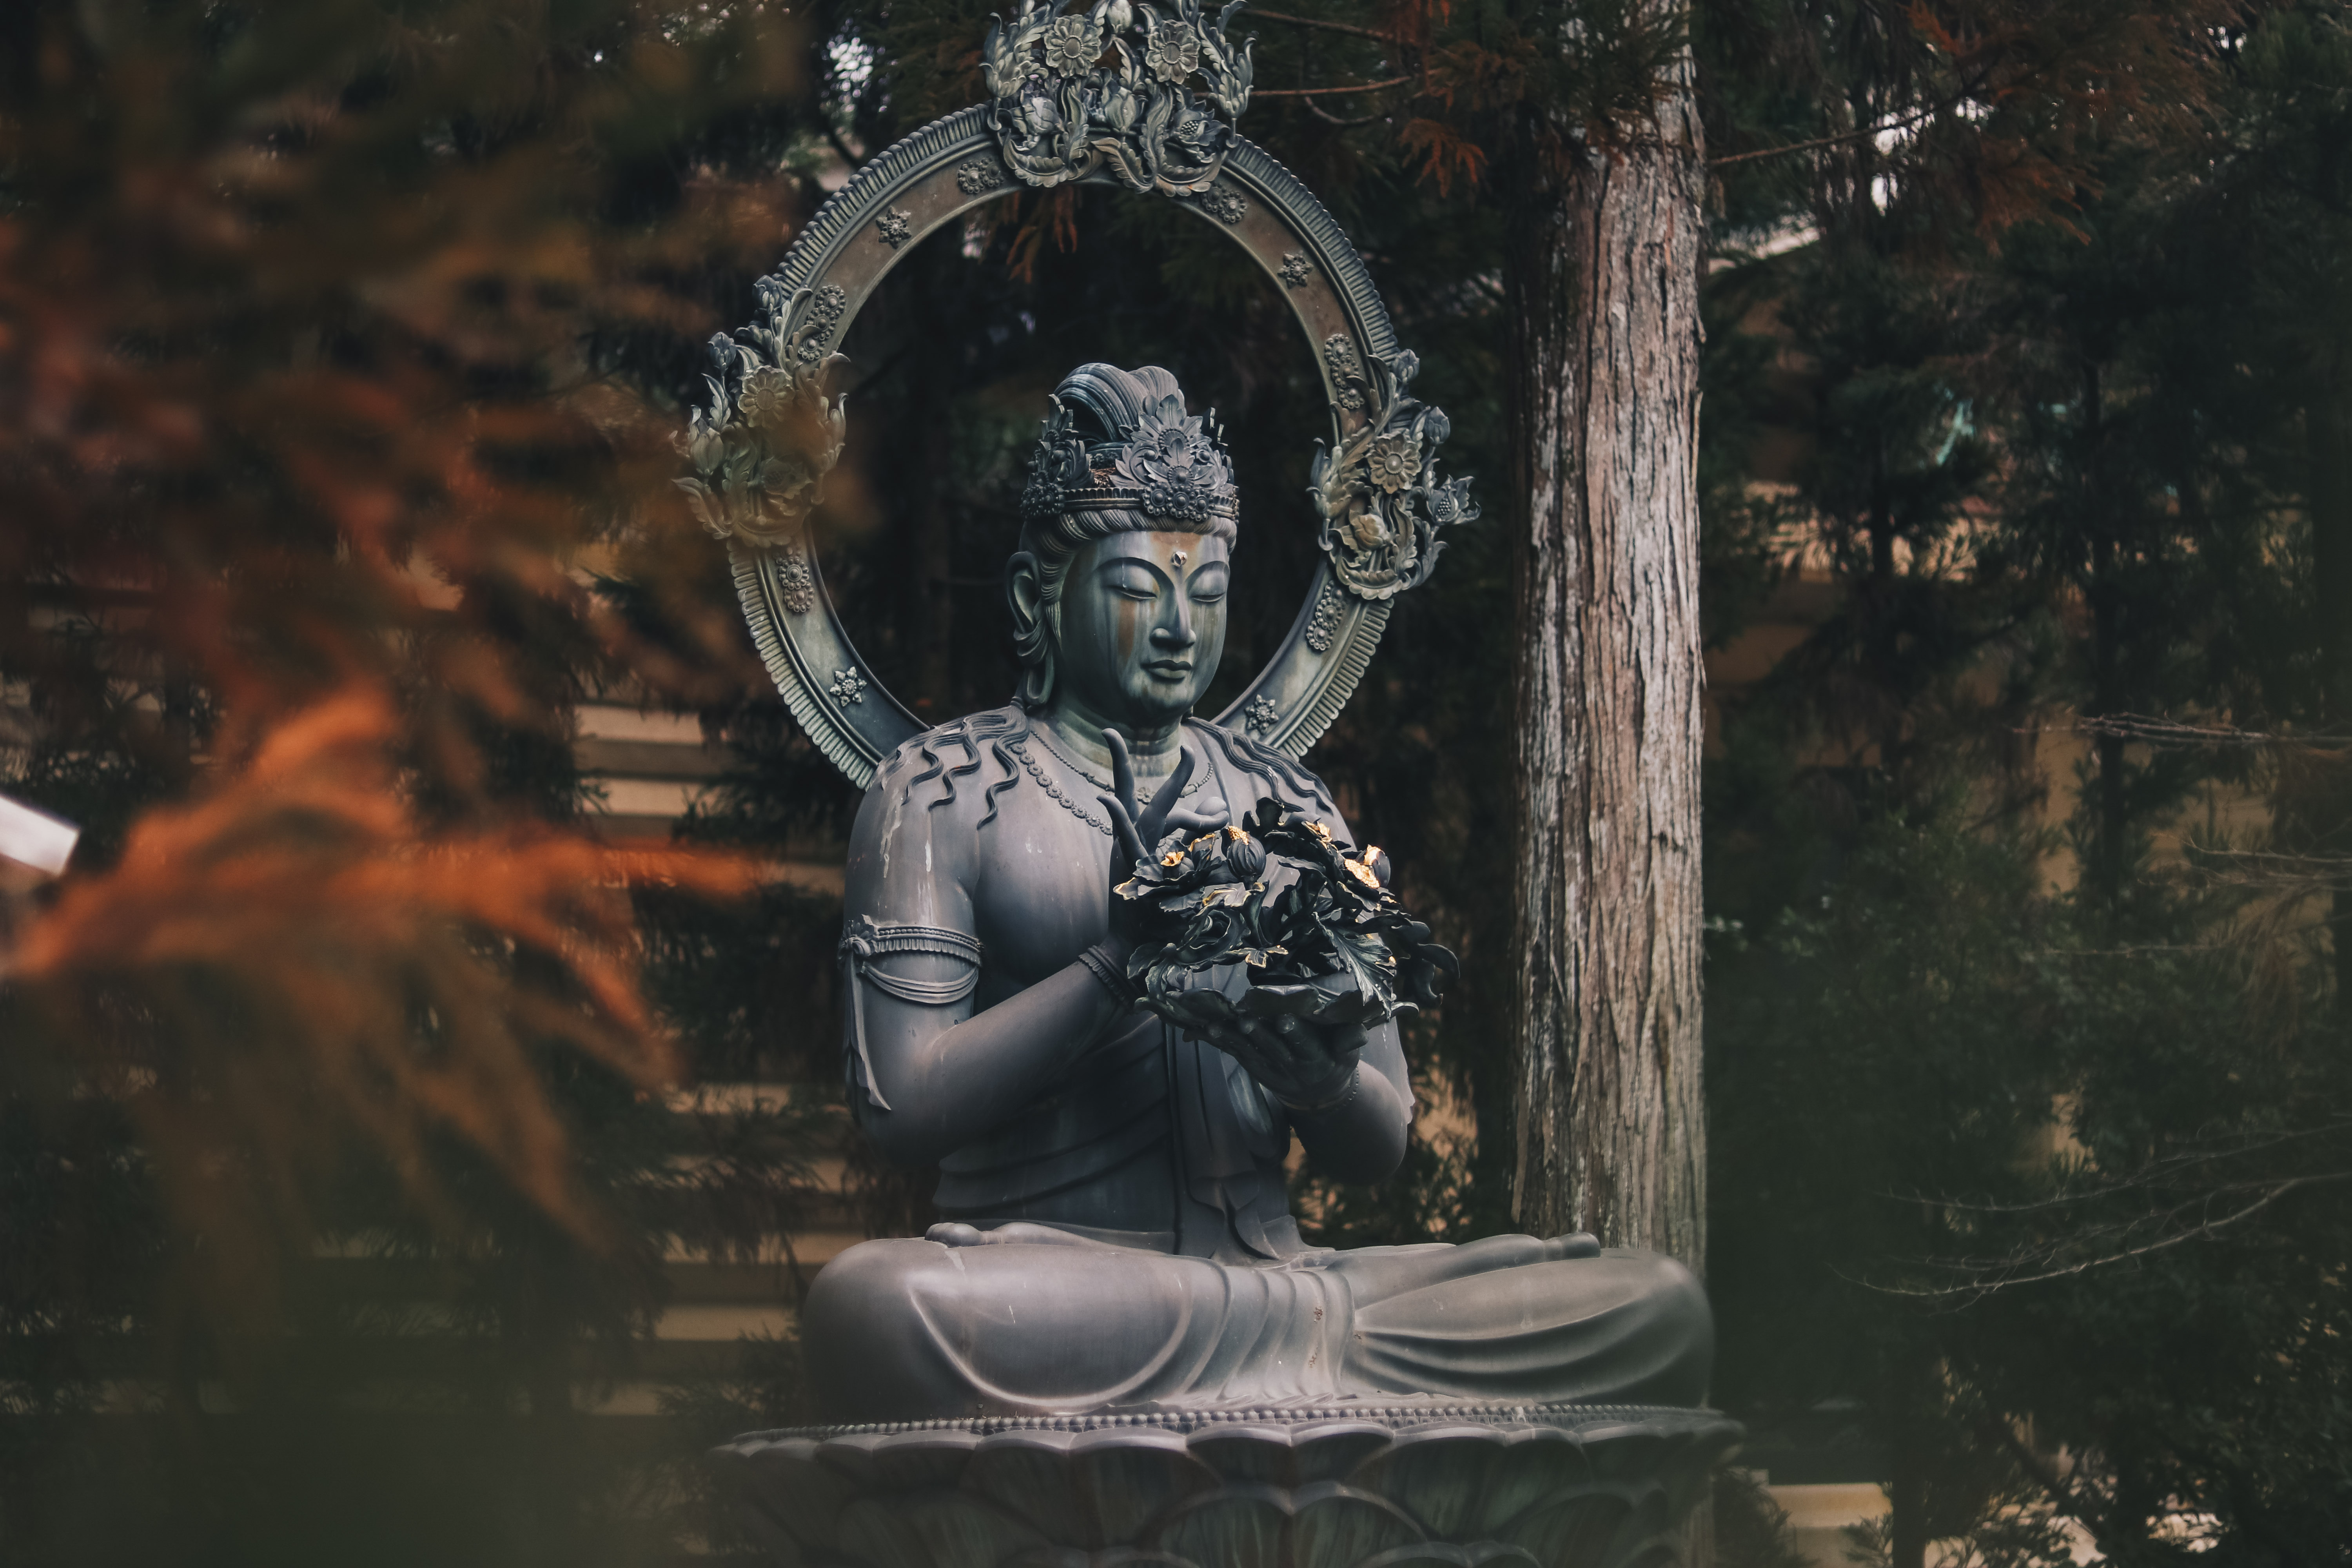 We got kicked out from this temple because it was already closed when we got there, but on our way to the exit we had a peaceful moment when we found this statue and some monks started chanting inside the building.